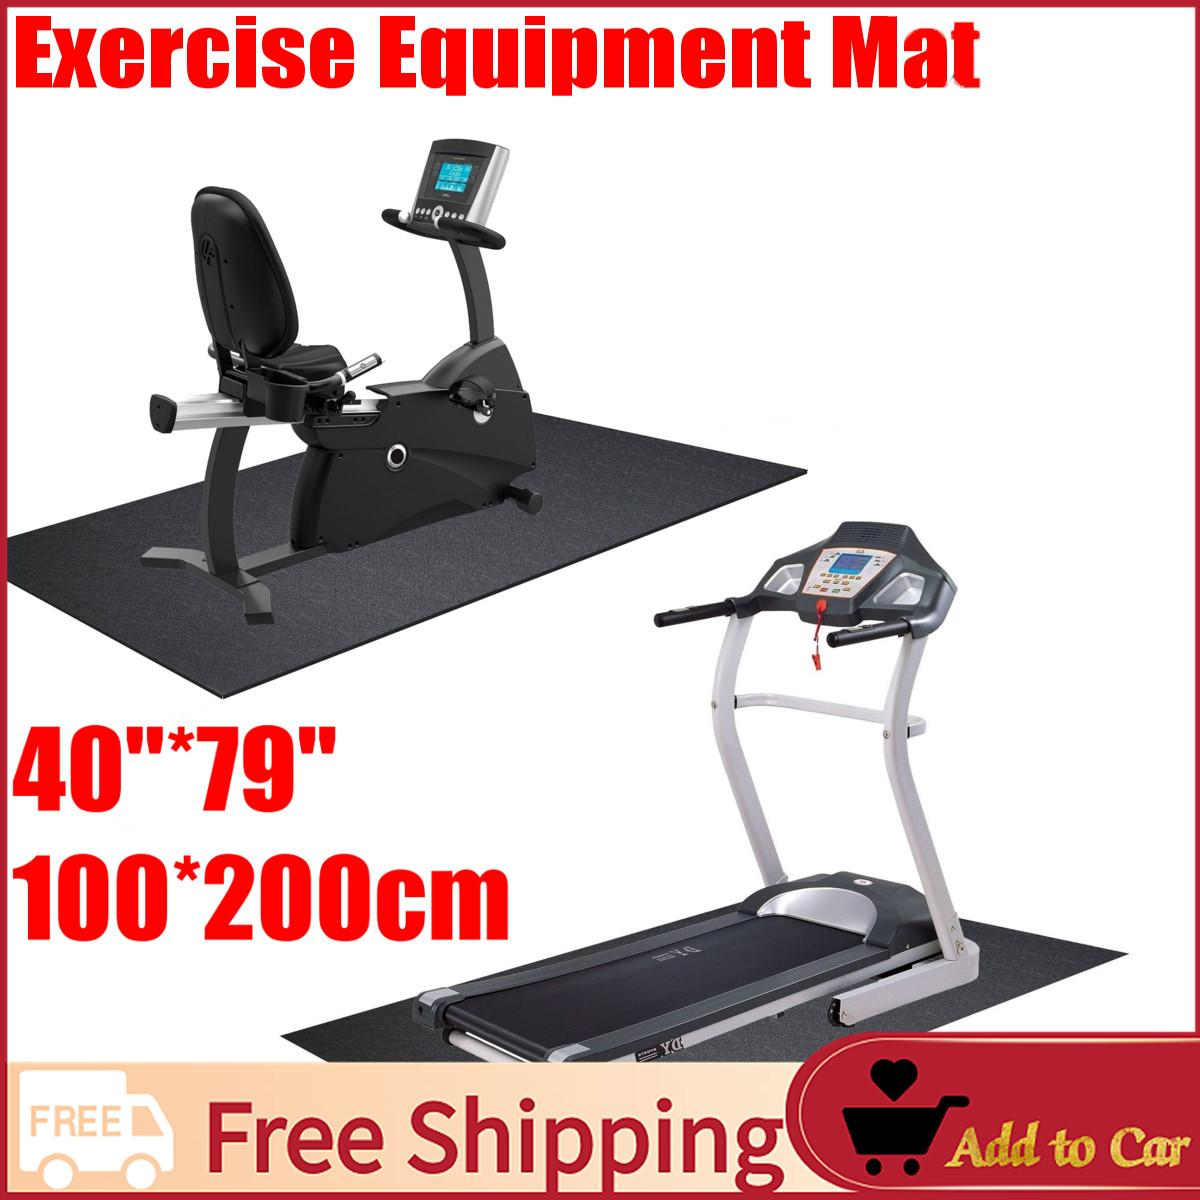 【free Shipping】exercise Mat 3x6.5-Ft Gym Equipment Gofit For Treadmill Bike Protect Floor Black By Moonbeam.